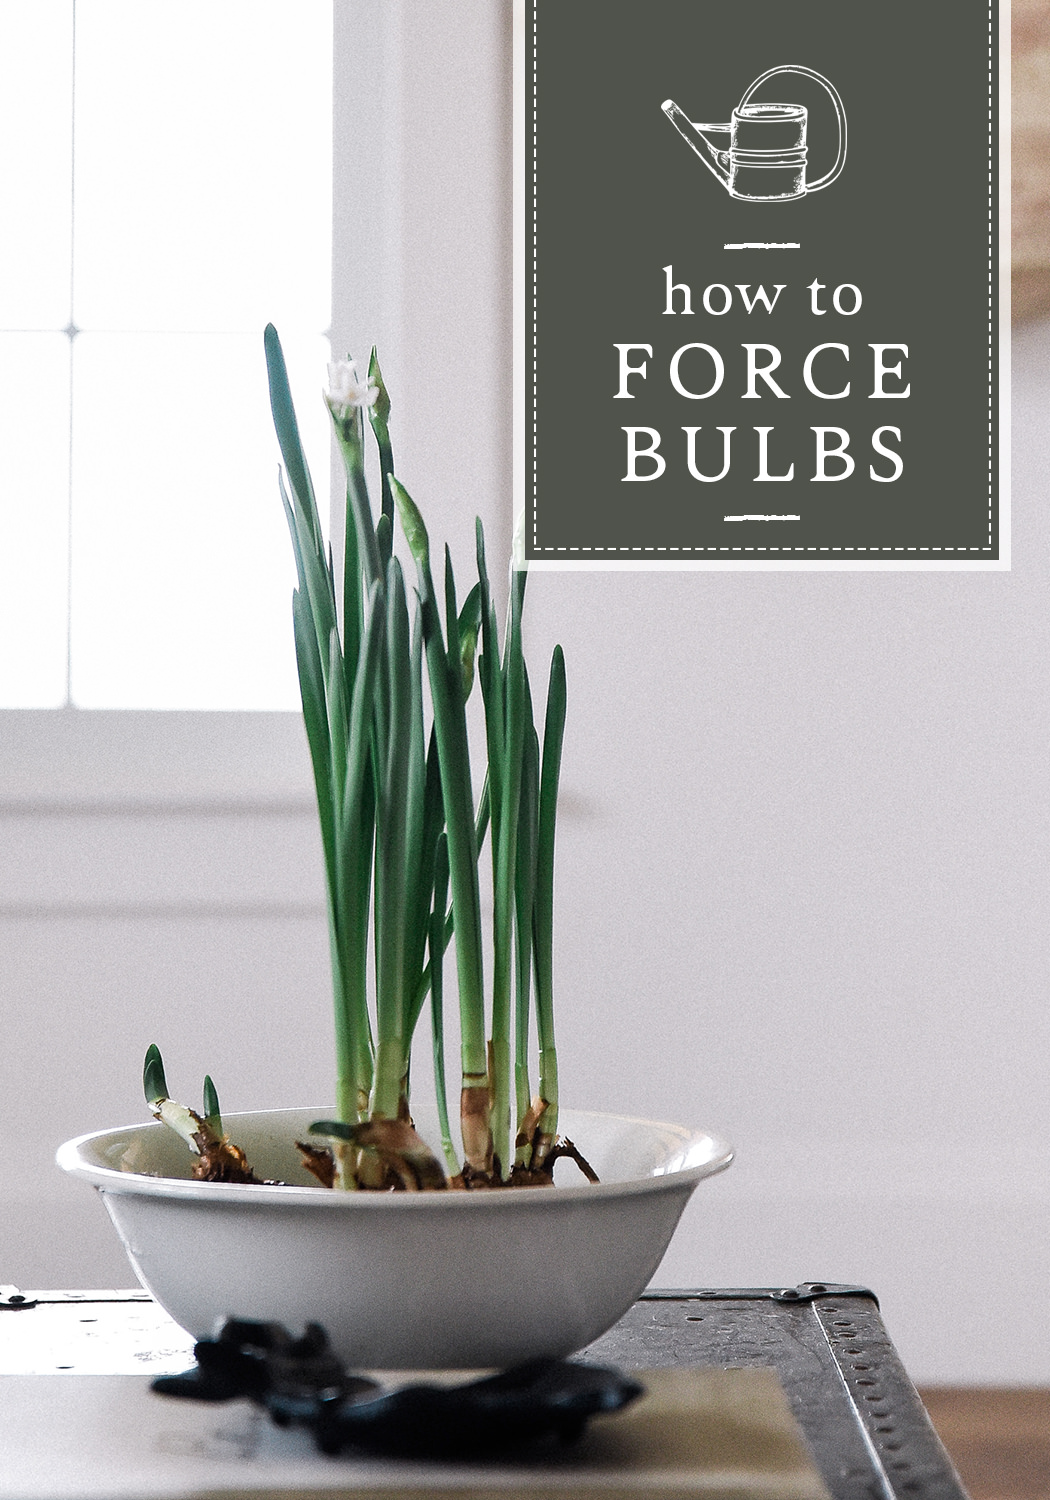 You can force bulbs indoors with just water and a vase! Forcing bulbs is beyond easy, and you will love having a little green in the spring! #forcingbulbs #springgardening #springdecor